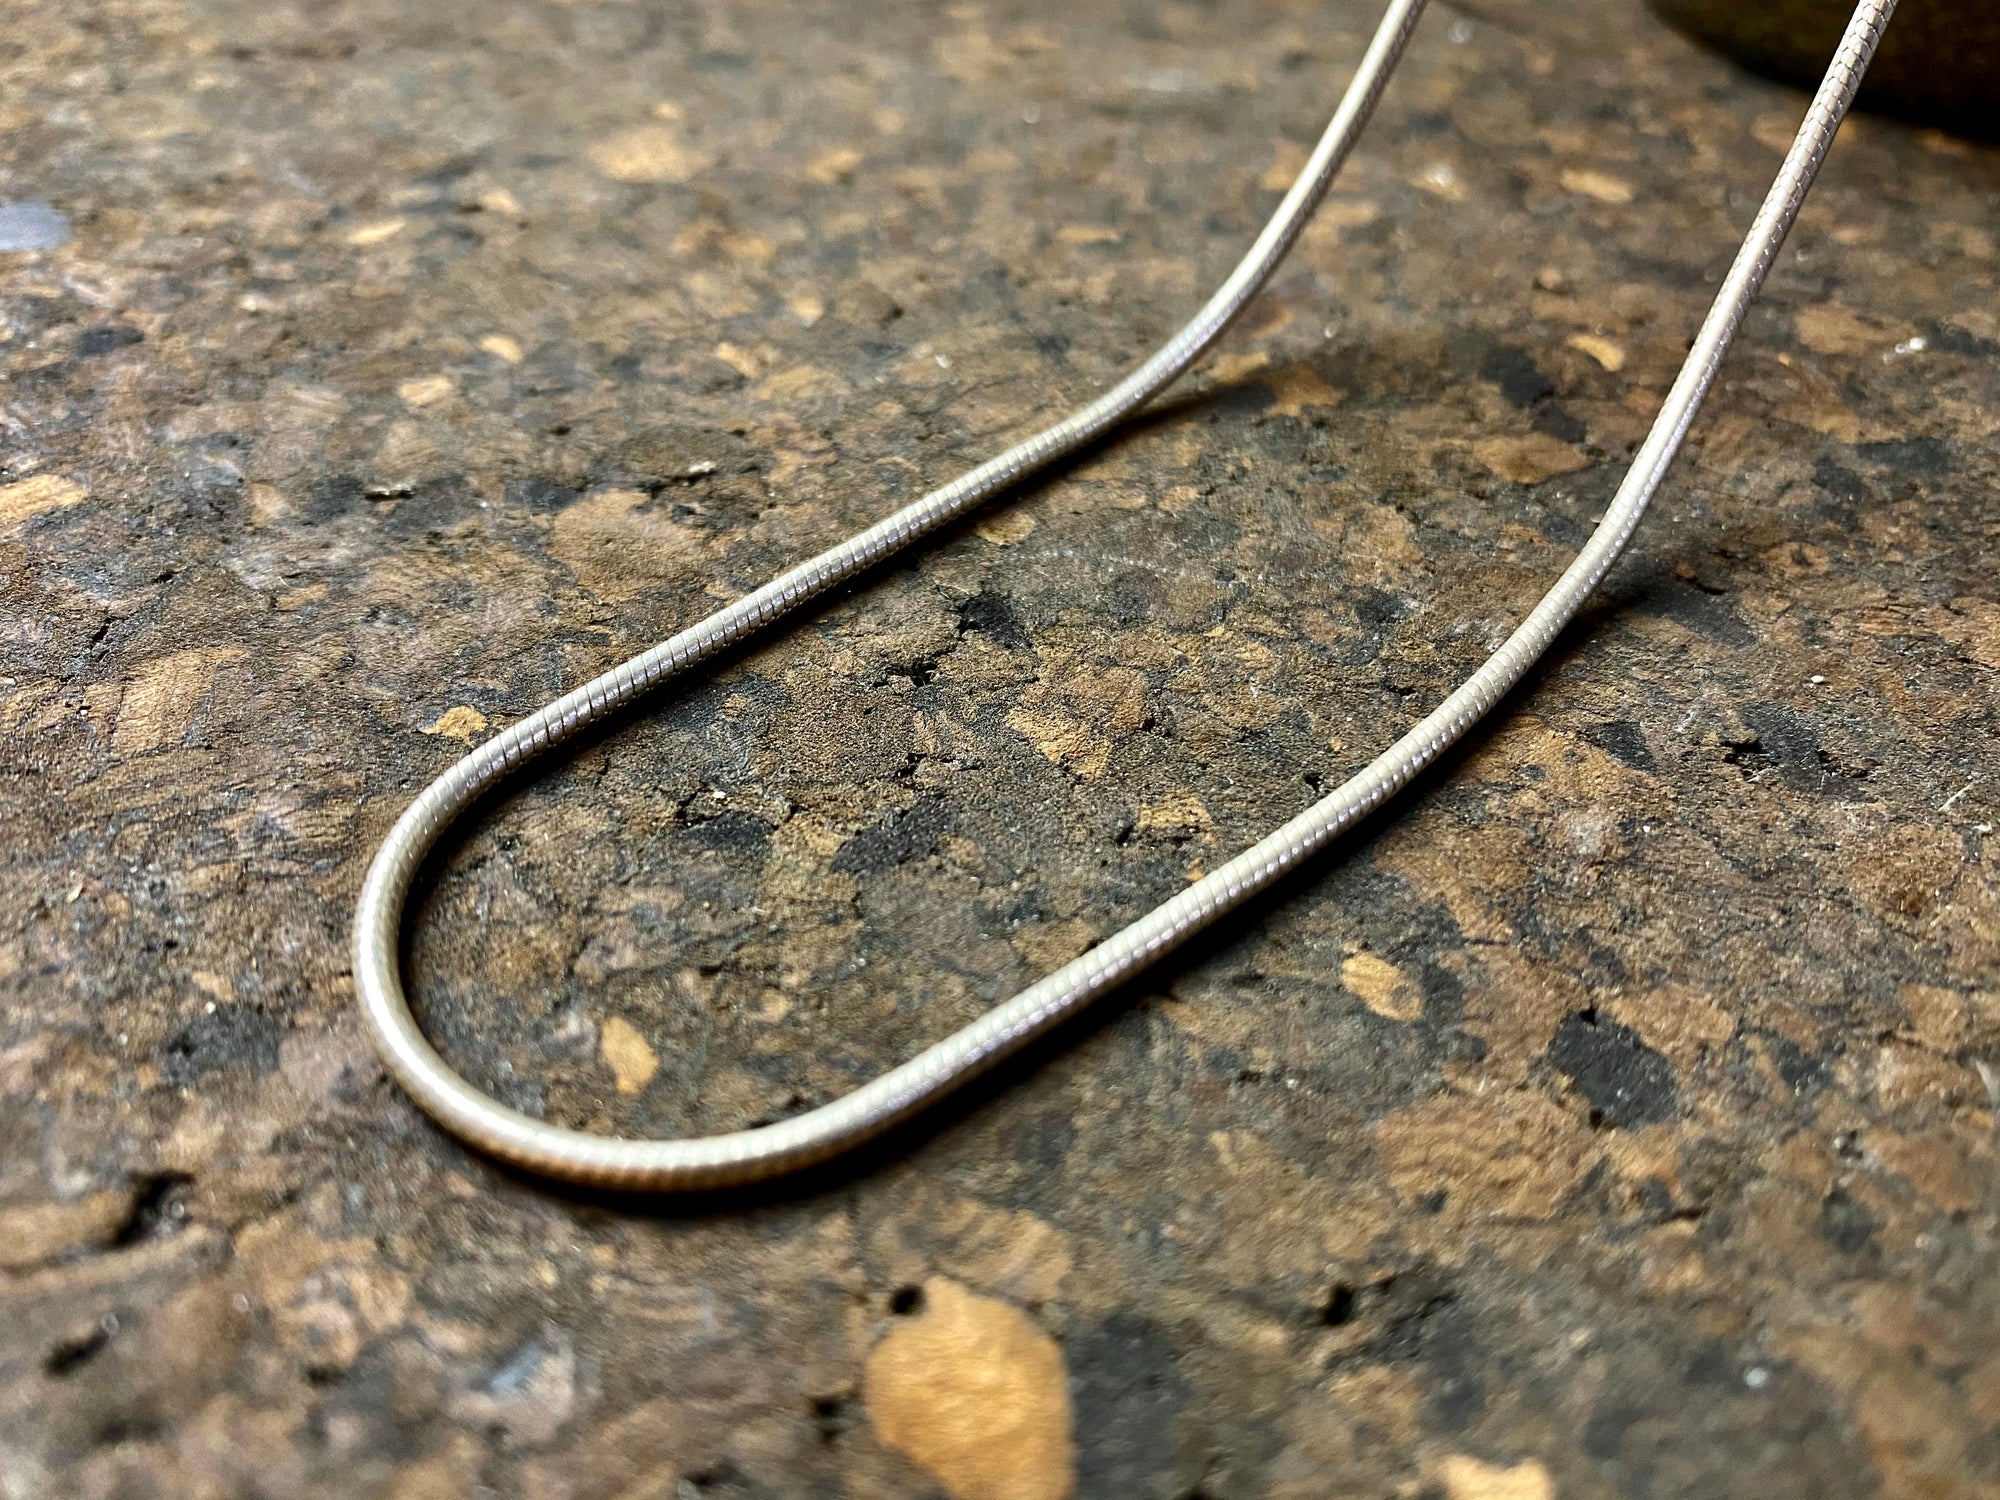 fine sterling silver snake chain is densely woven and strong, with a bright silver finish and ring clasp